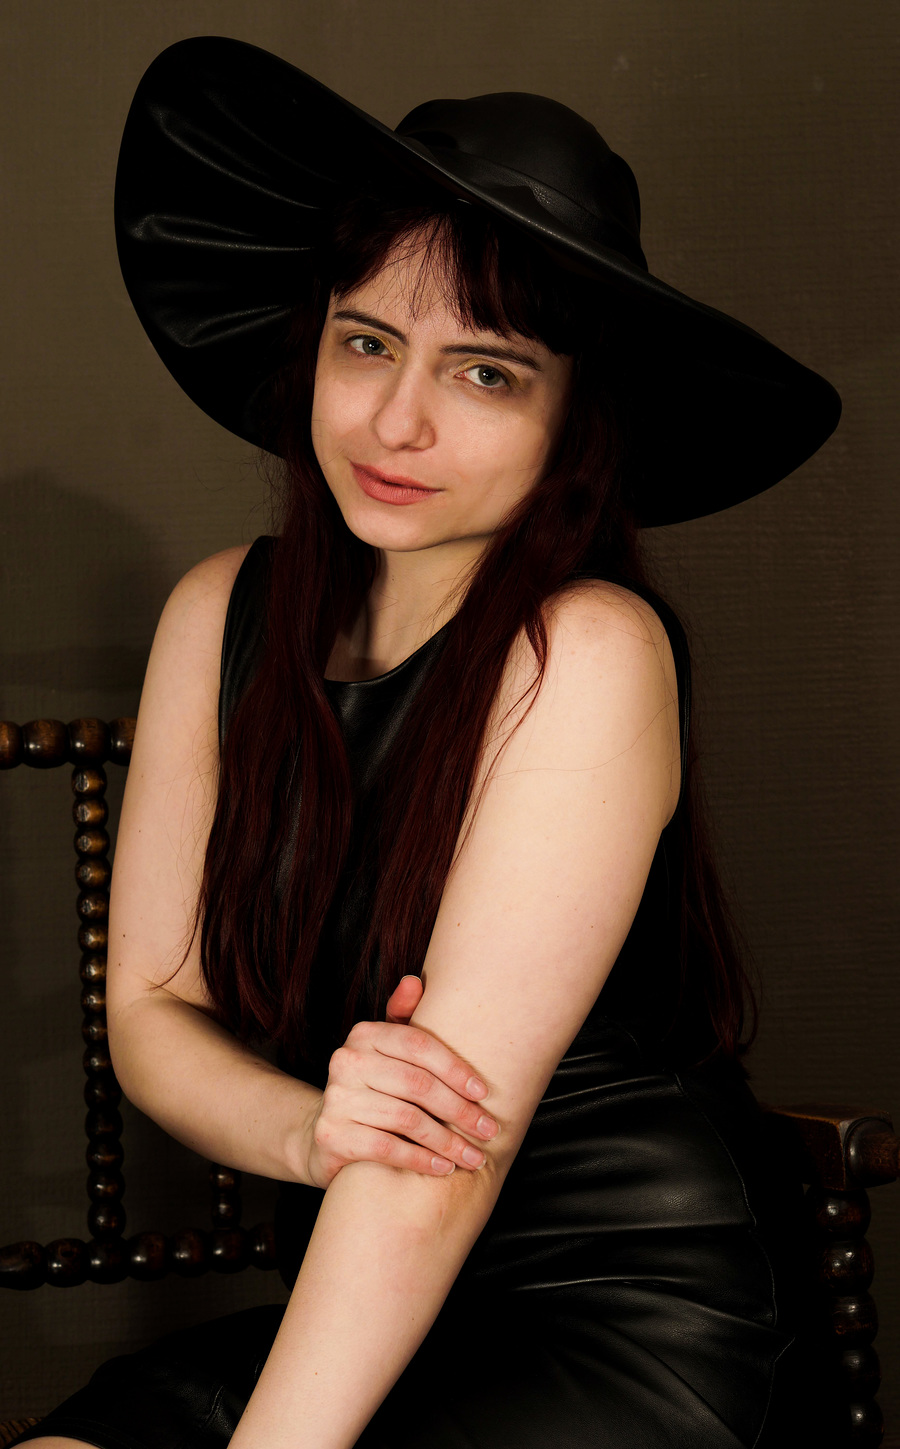 Zara Liore the witch / Photography by T.R. Devlin, Model Zara Liore, Makeup by Zara Liore, Taken at FoToRo / Uploaded 14th May 2018 @ 01:42 PM